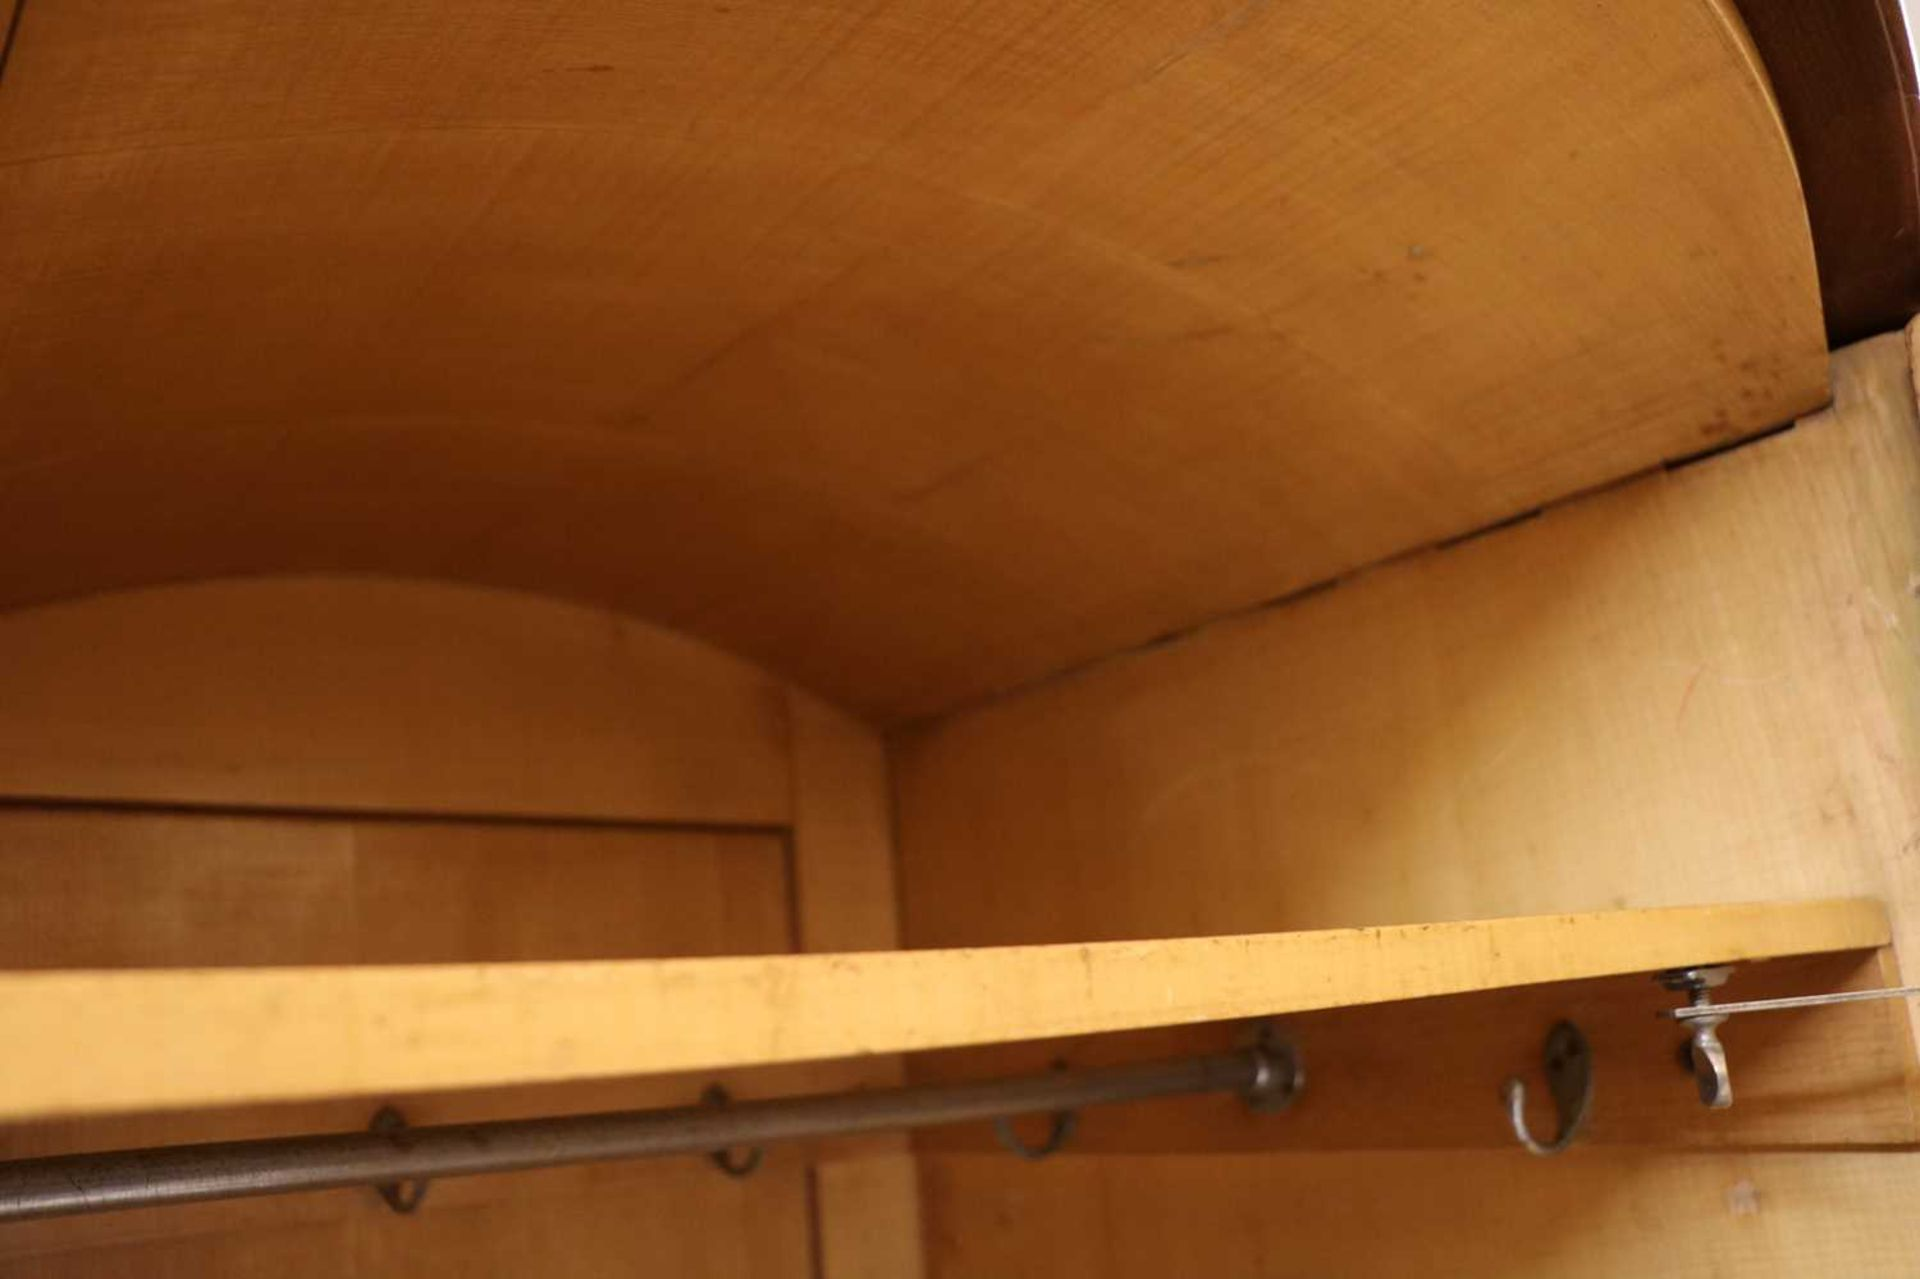 An Art Deco burr walnut and maple bedroom suite, - Image 19 of 45